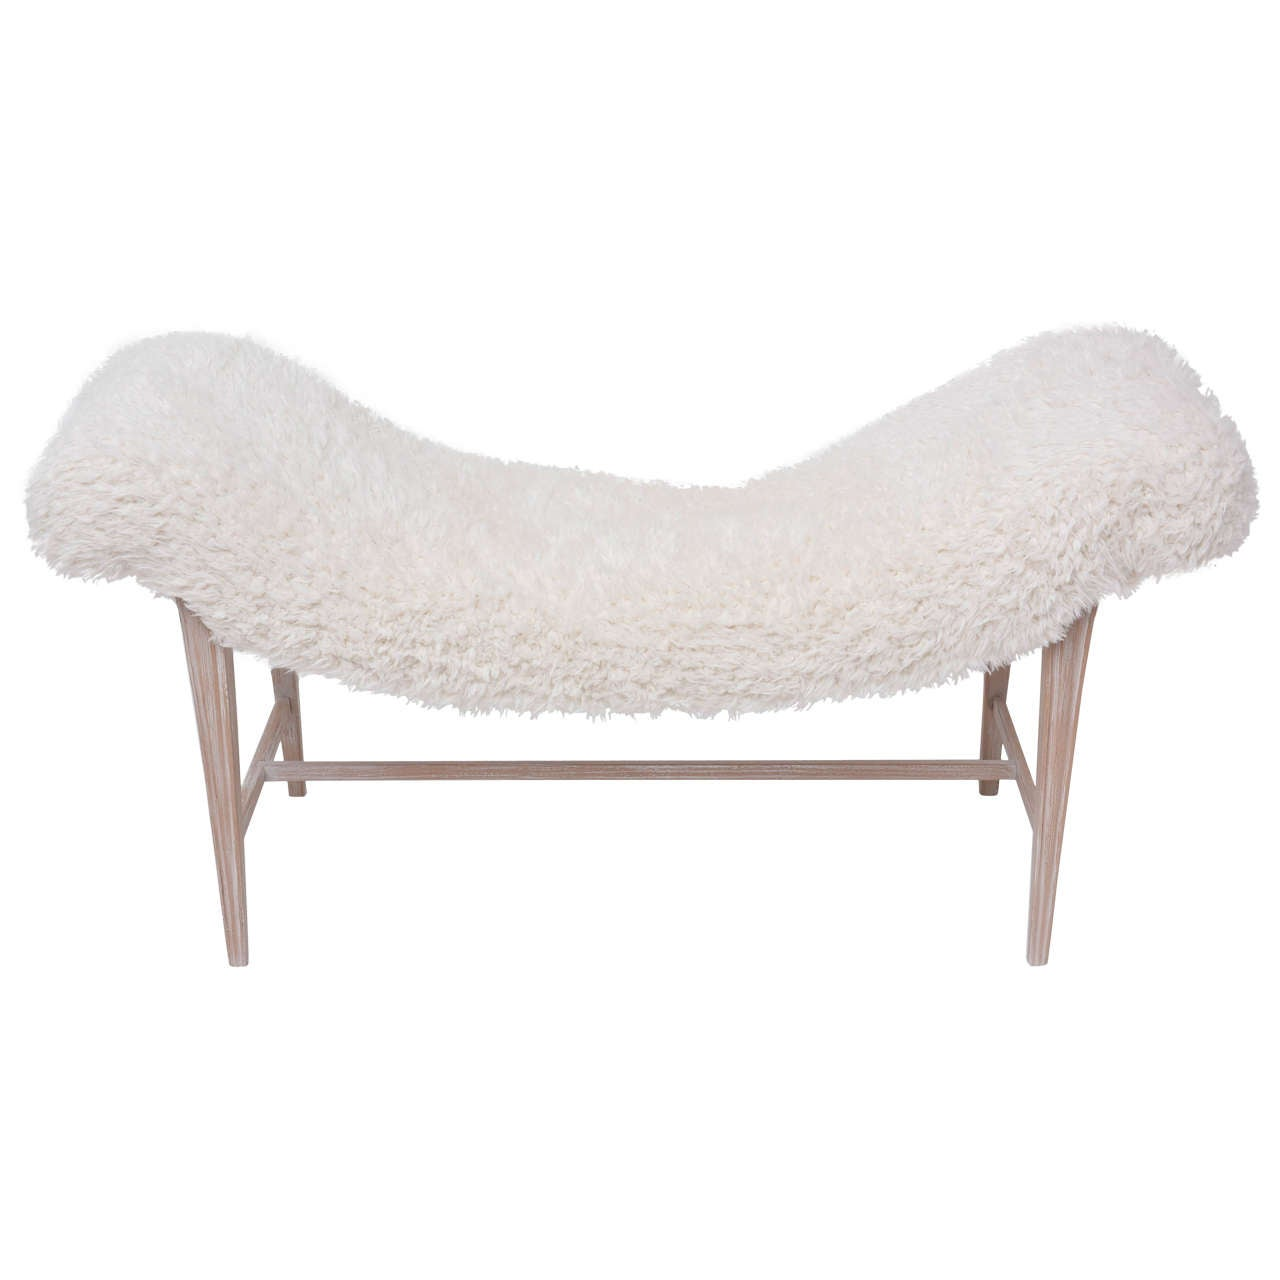 Faux Fur Curved Bench